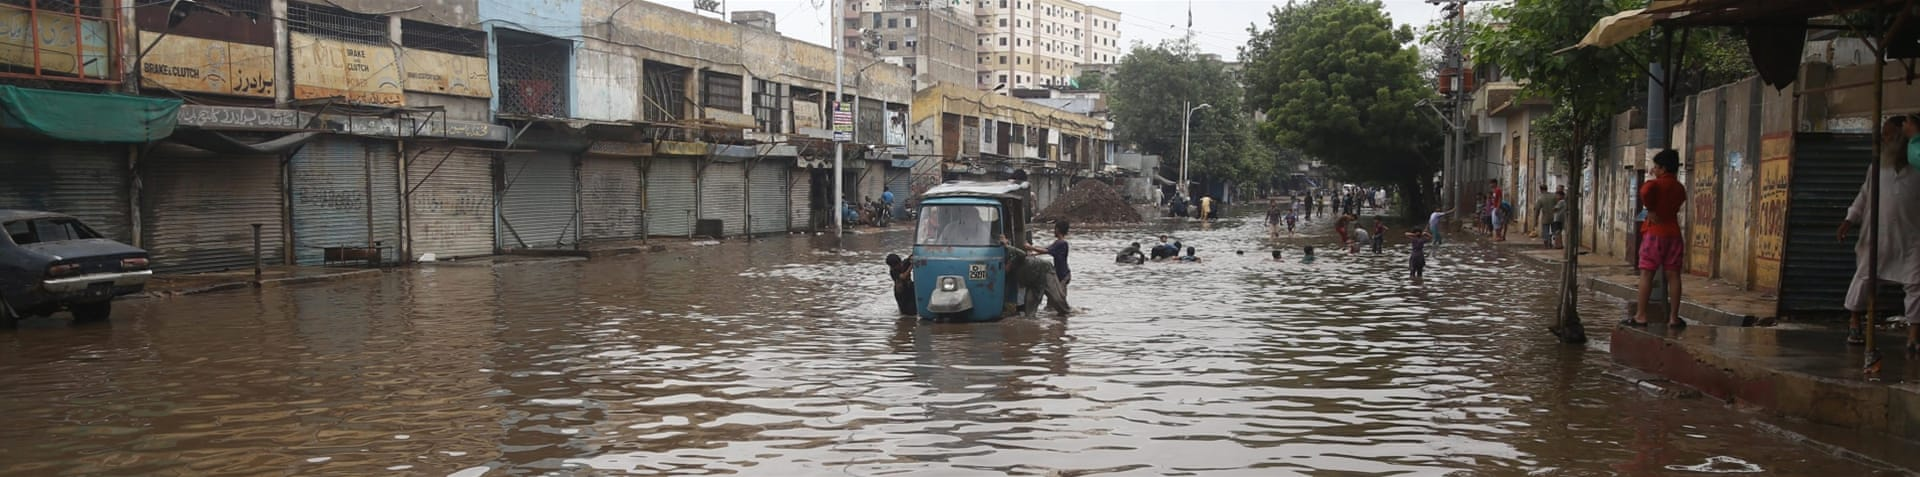 The flooding has left 45 percent of Karachi without power [Rehan Khan/EPA]